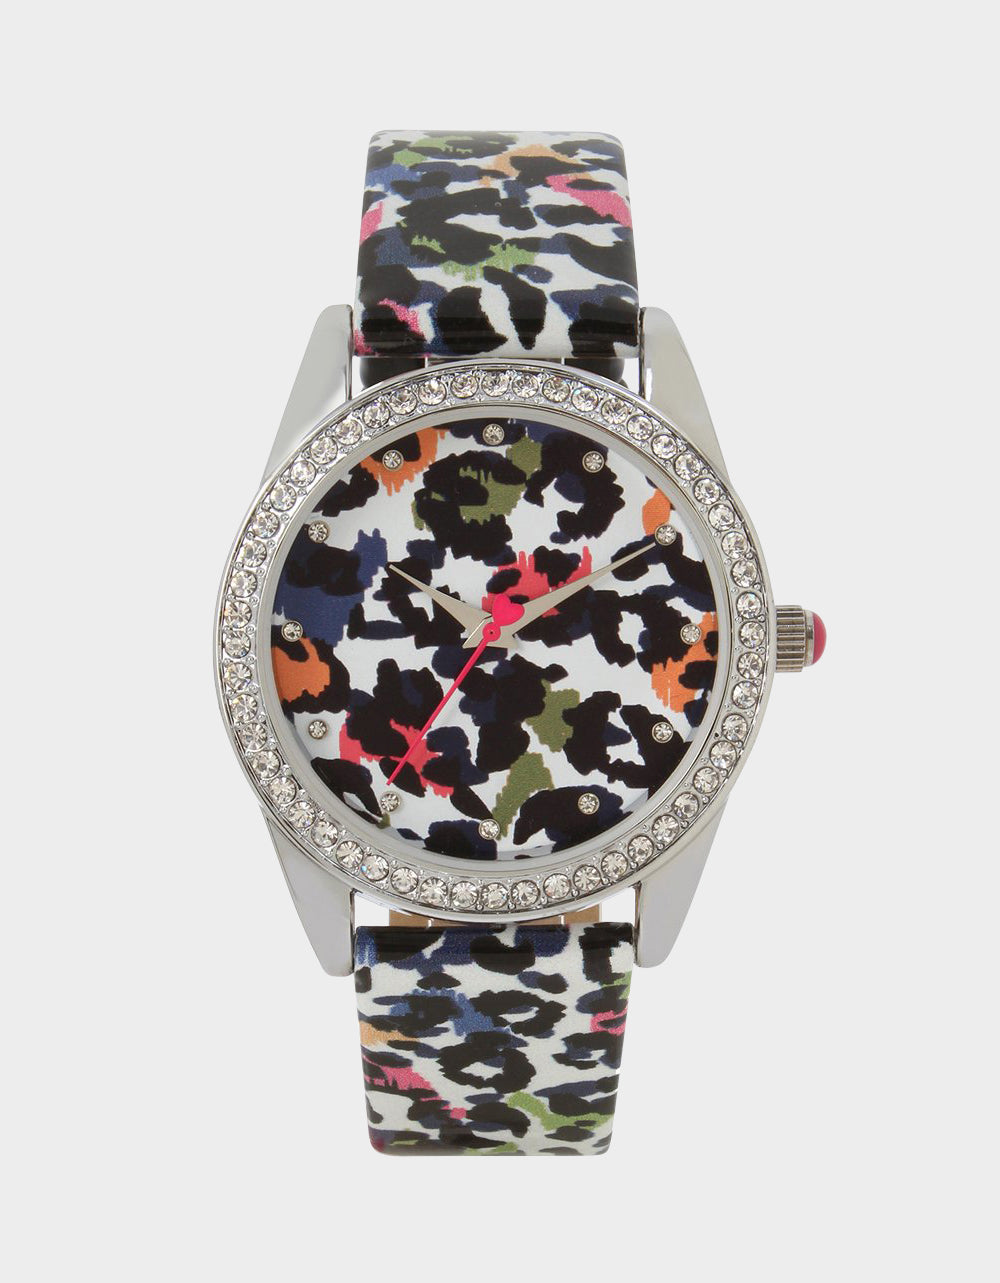 SUMMERTIME SECRETS FLORAL WATCH BLACK MULTI - JEWELRY - Betsey Johnson